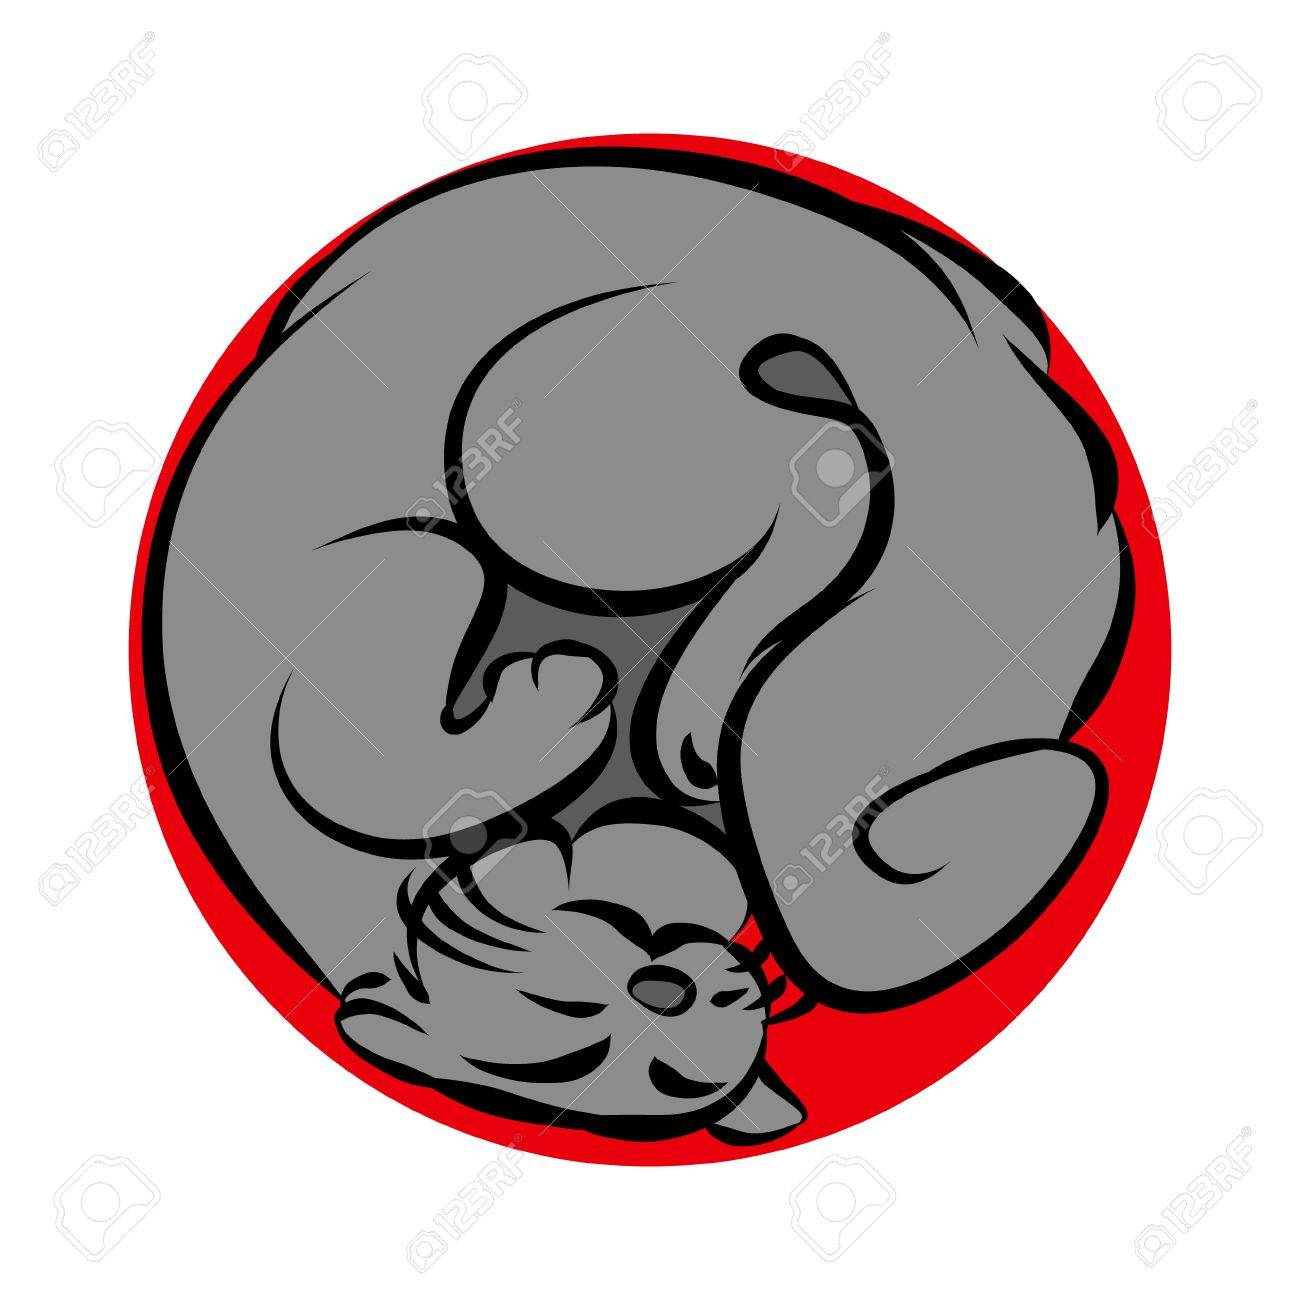 1300x1300 Cat Curled Up, Abstract Vector Illustration On White Background